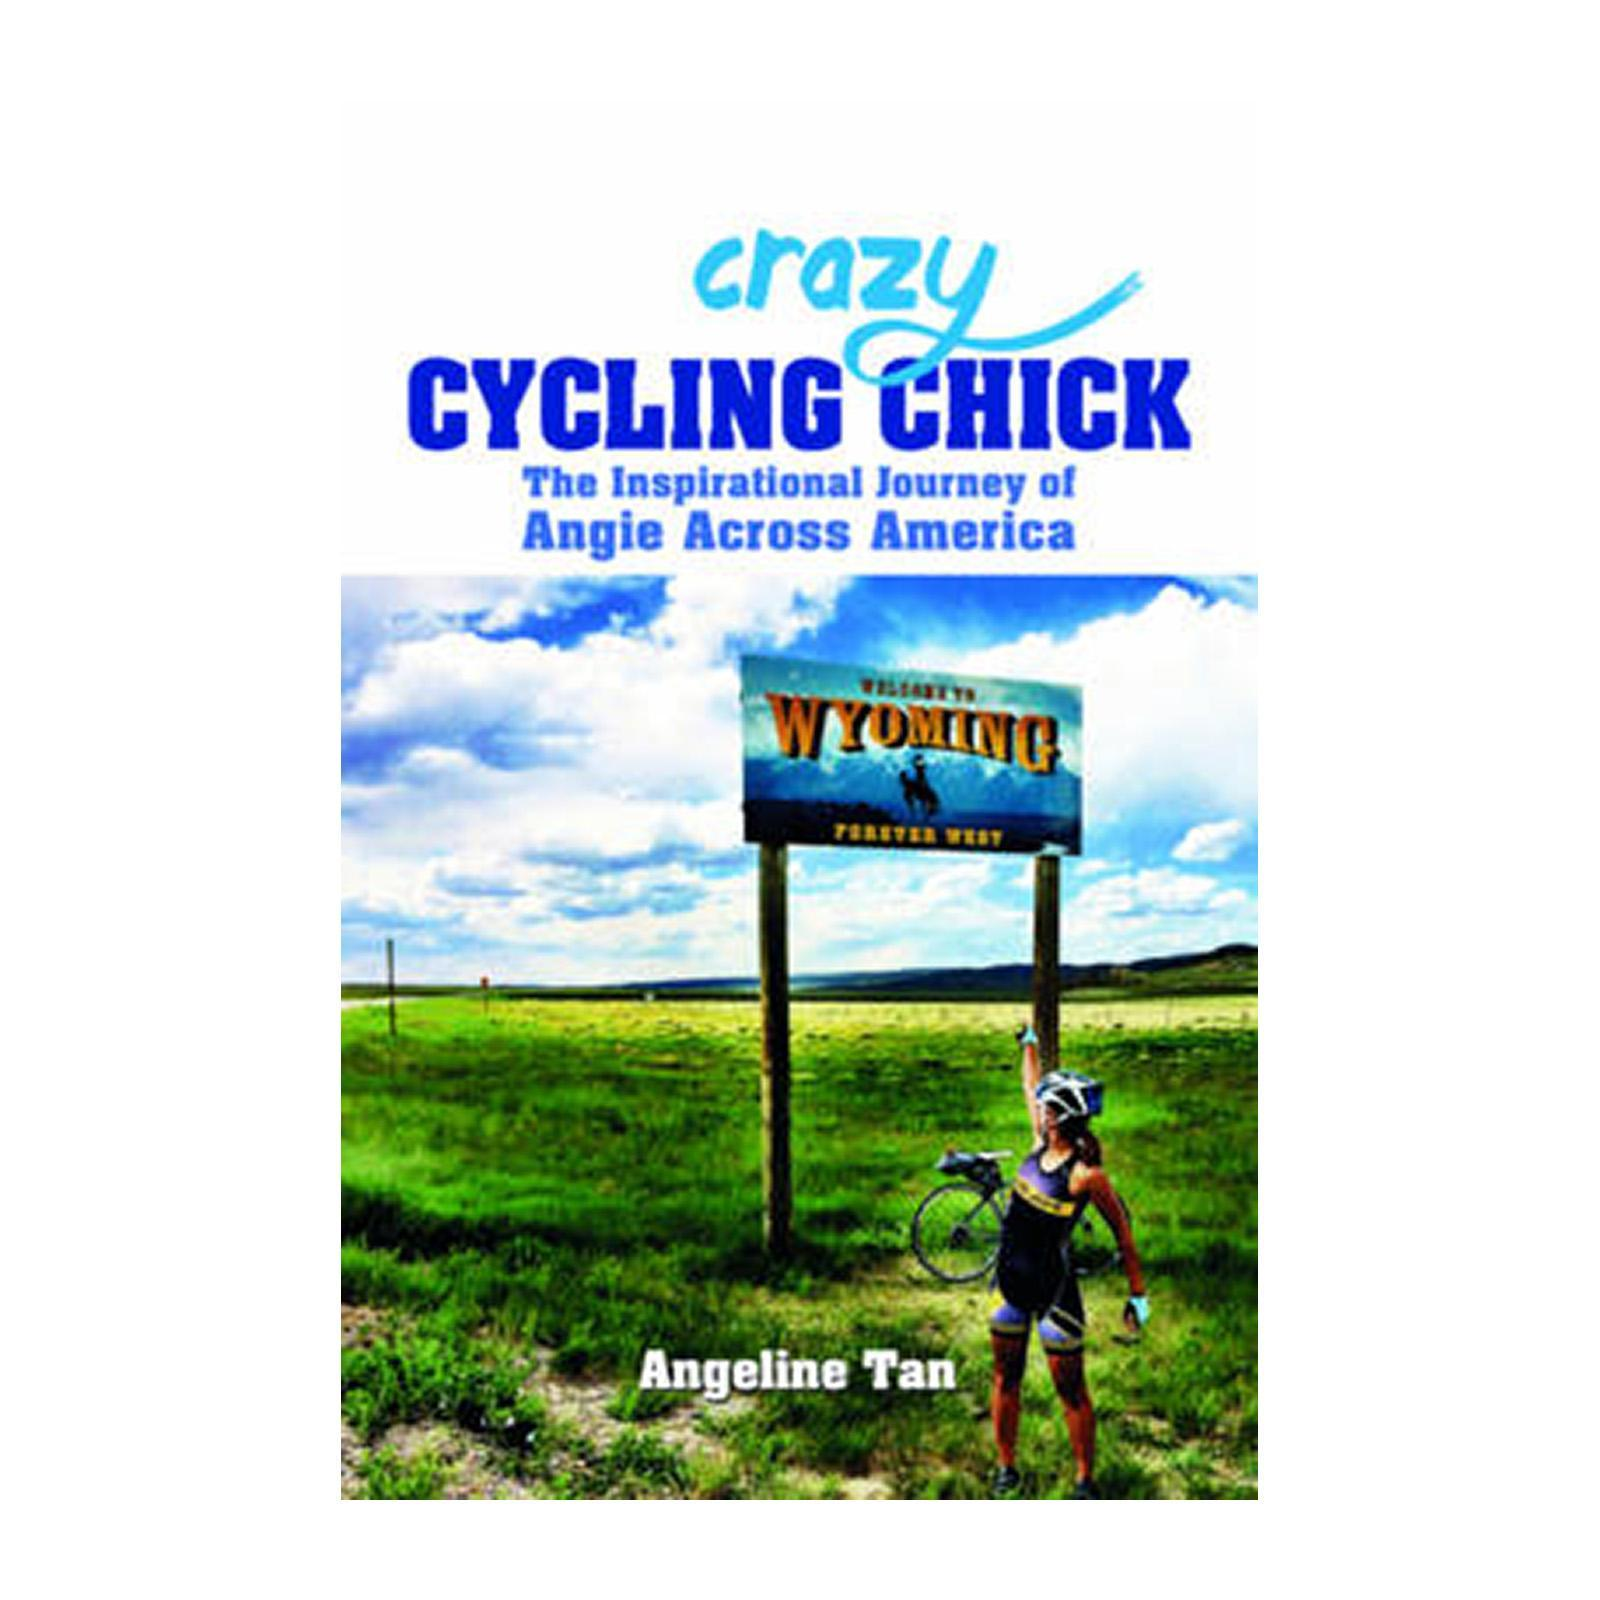 Crazy Cycling Chick: The Inspirational Journey Of Angie Across America (Paperback)